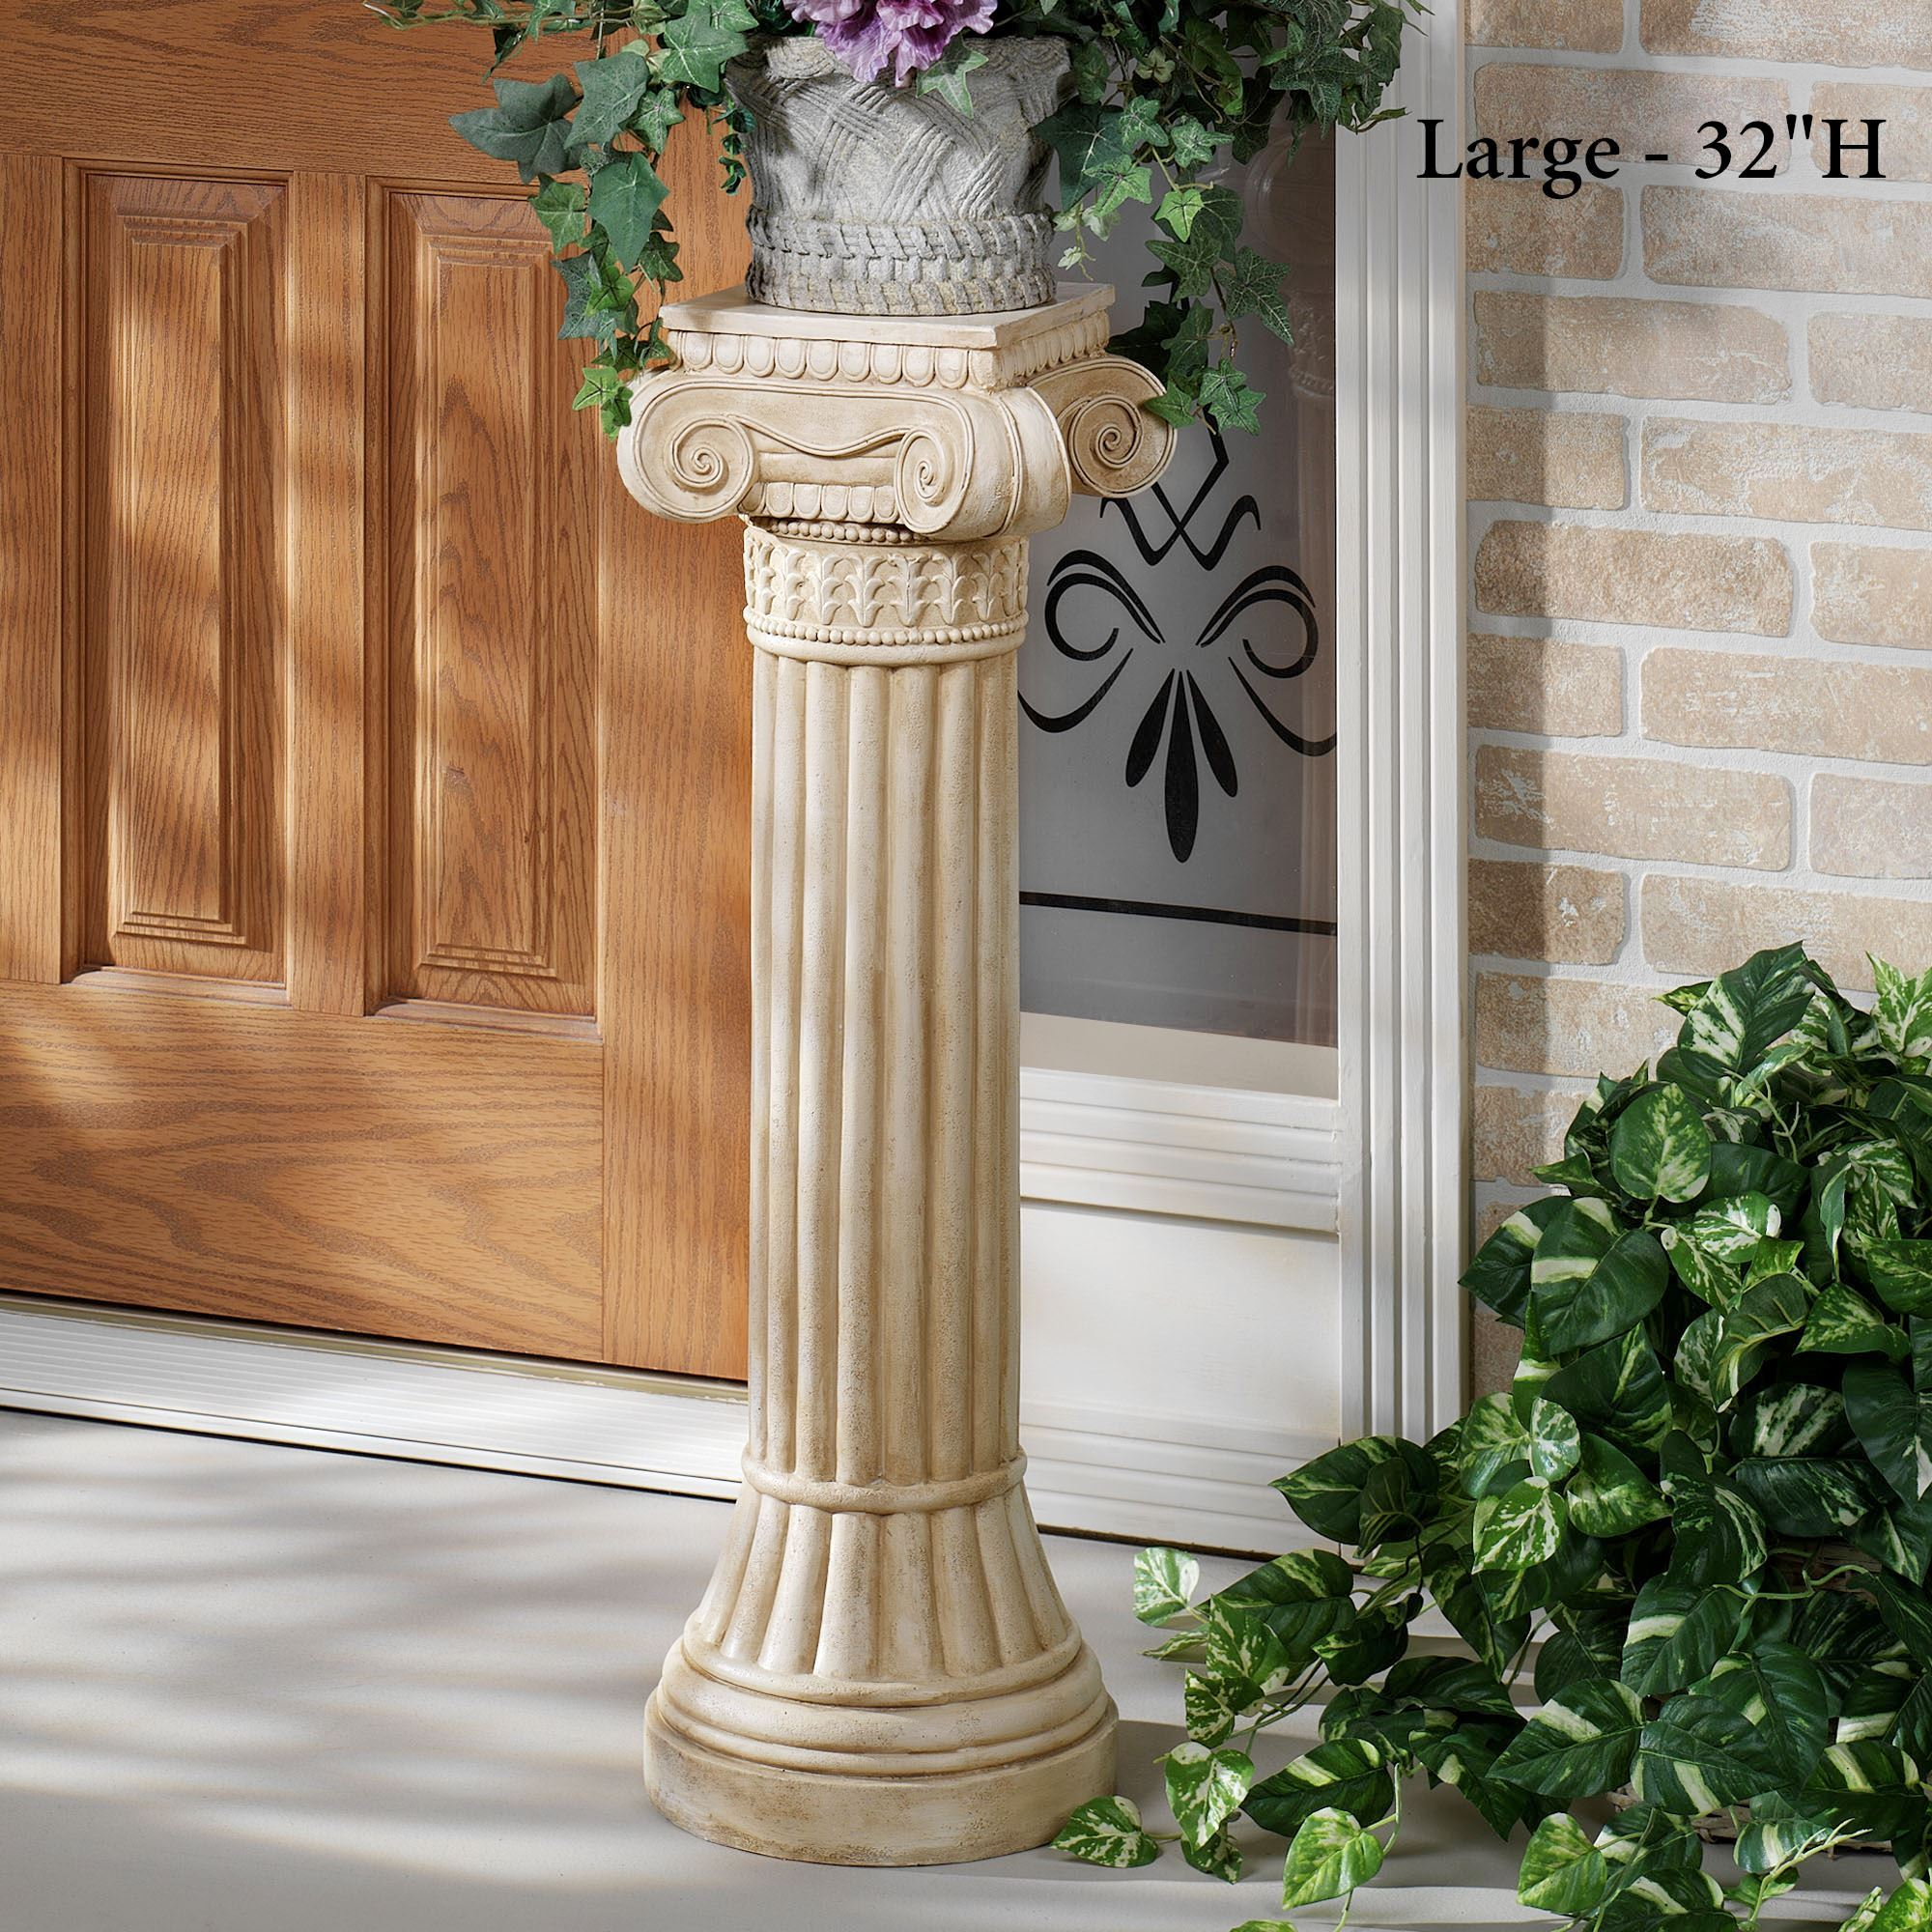 seeded new light pedestal large exterior york lantern aged for matt collection ornate use bronze outdoor medium with in w glass tournai gothic lighting